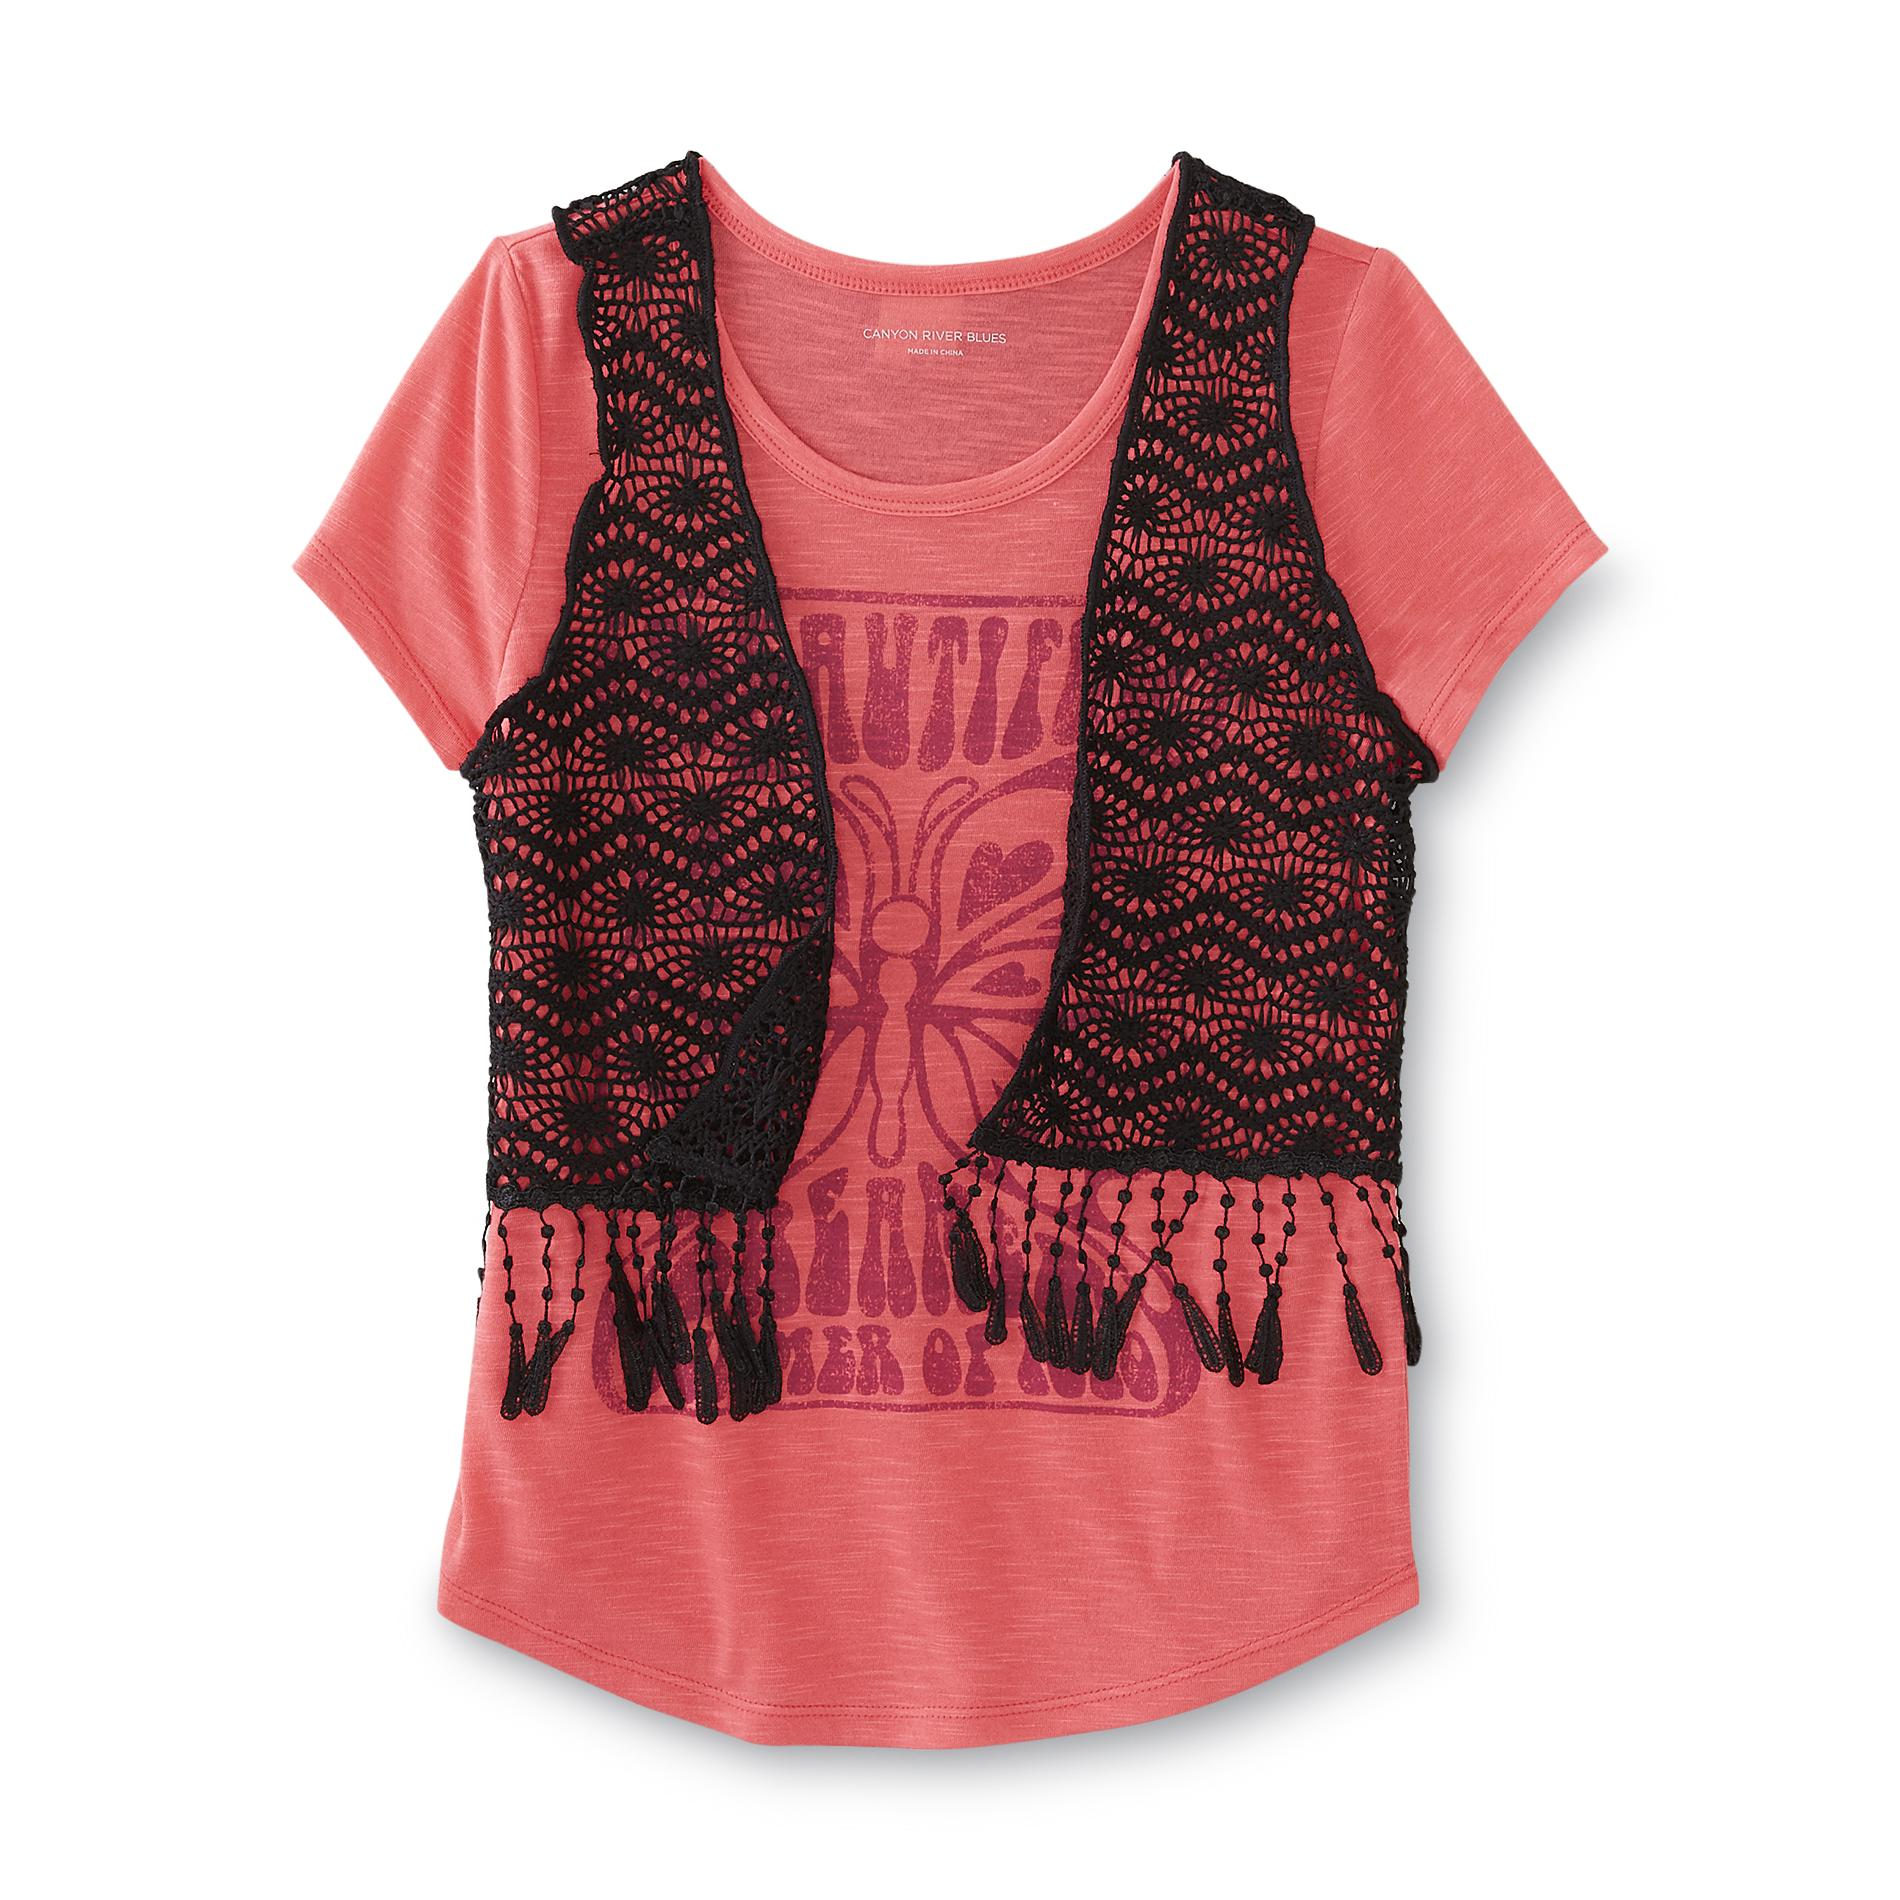 Canyon River Blues Girl's Graphic T-Shirt & Vest - Butterfly